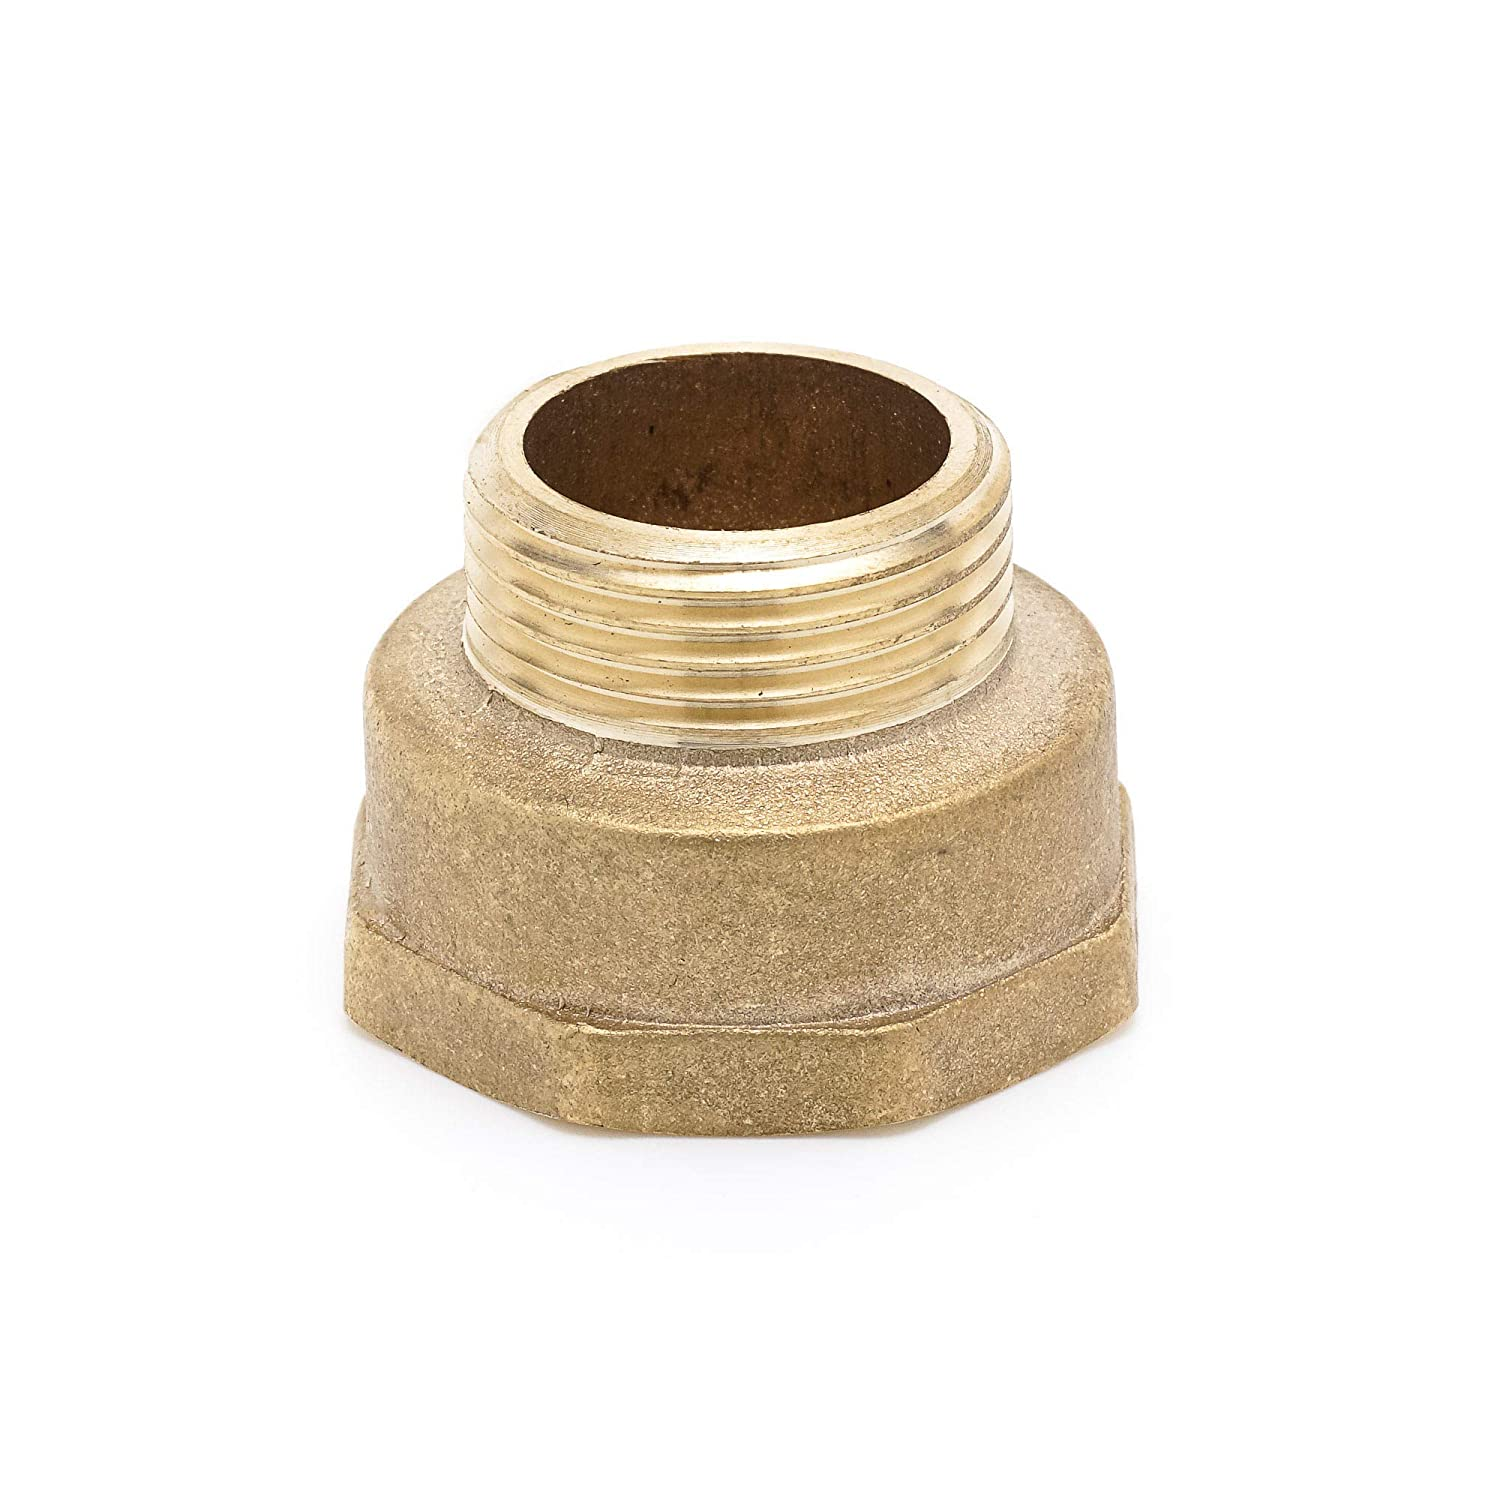 """Pipe Fitting NPT Adapter 1//2 Male x 3//4 /"""" Female Brass Adapter 0,5 inch x 0,75 inch Female"""